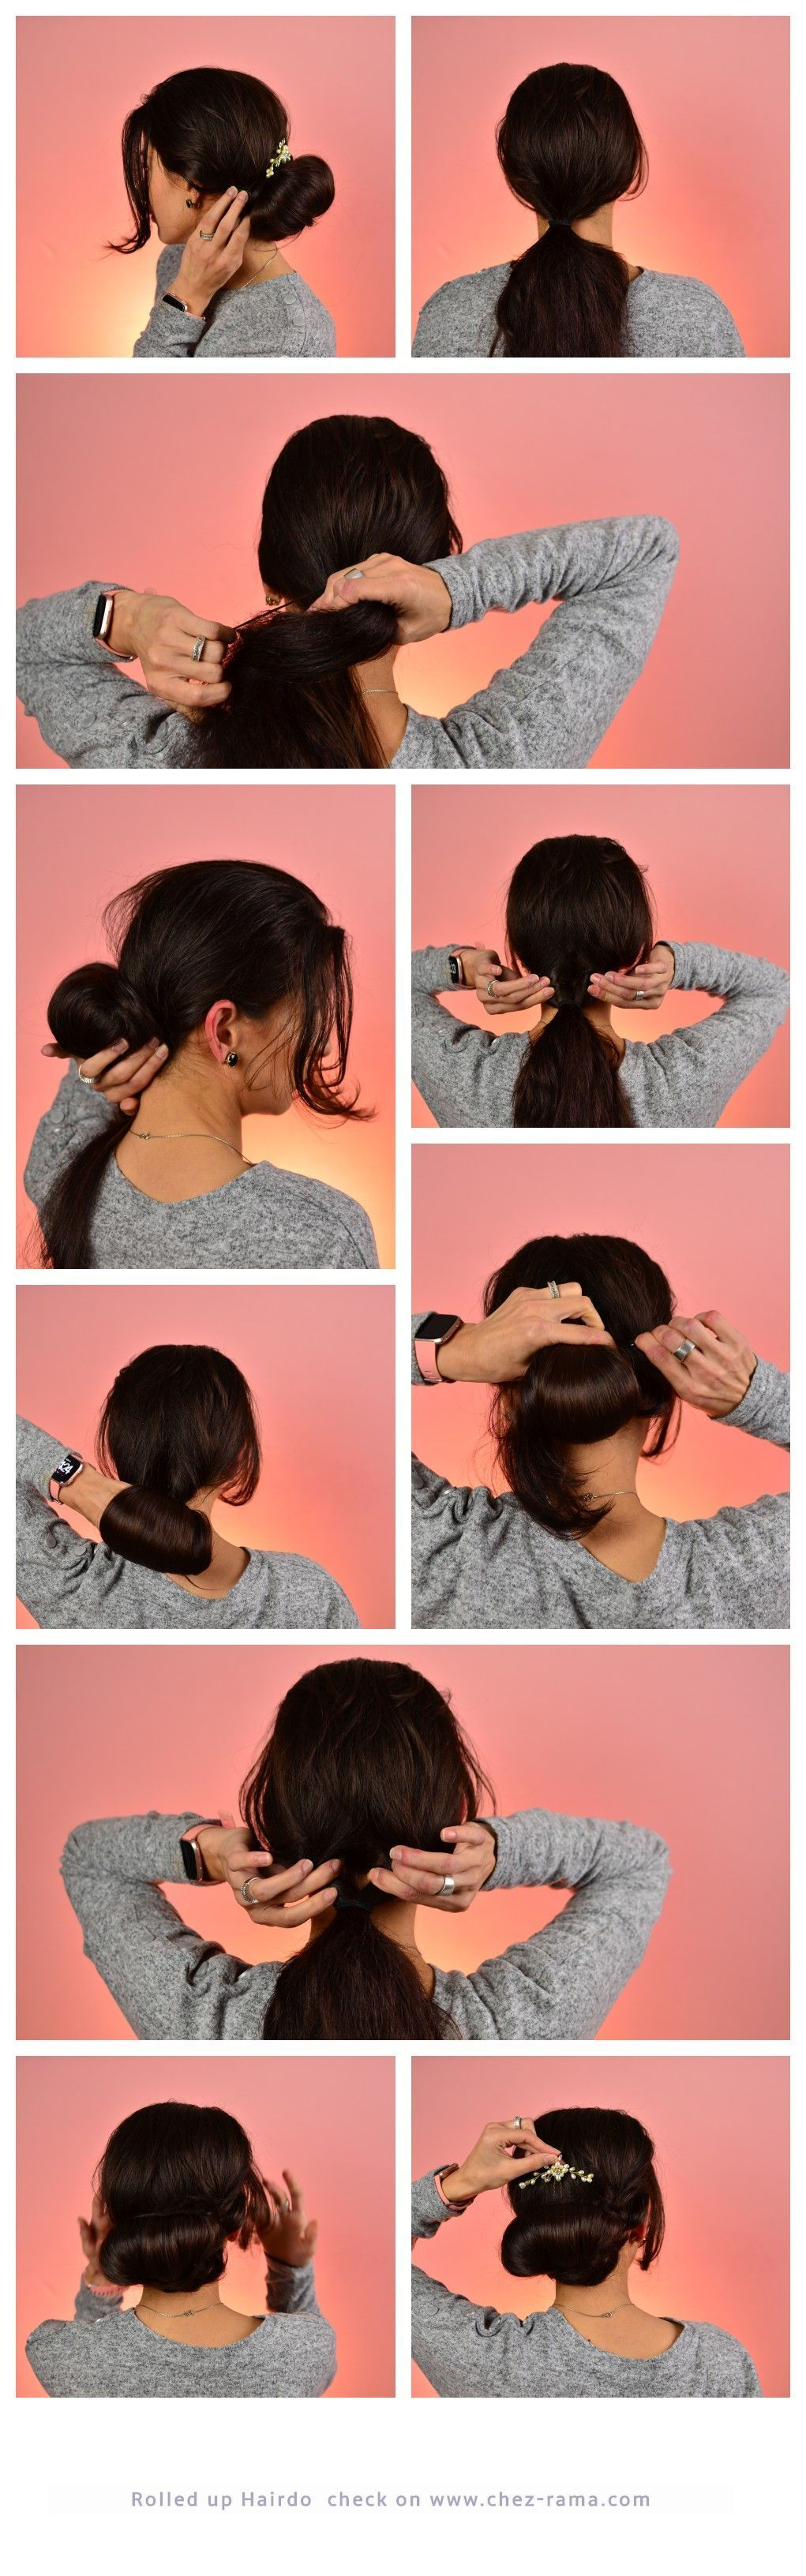 Lazy Hairstyle To Do At Home Rolled Up Hairdo Hairstyle Hair Look Updo Easy Hairtutrial Quick Hairstyle Thanksgiving Ho Lazy Hairstyles Up Hairdos Hair Styles